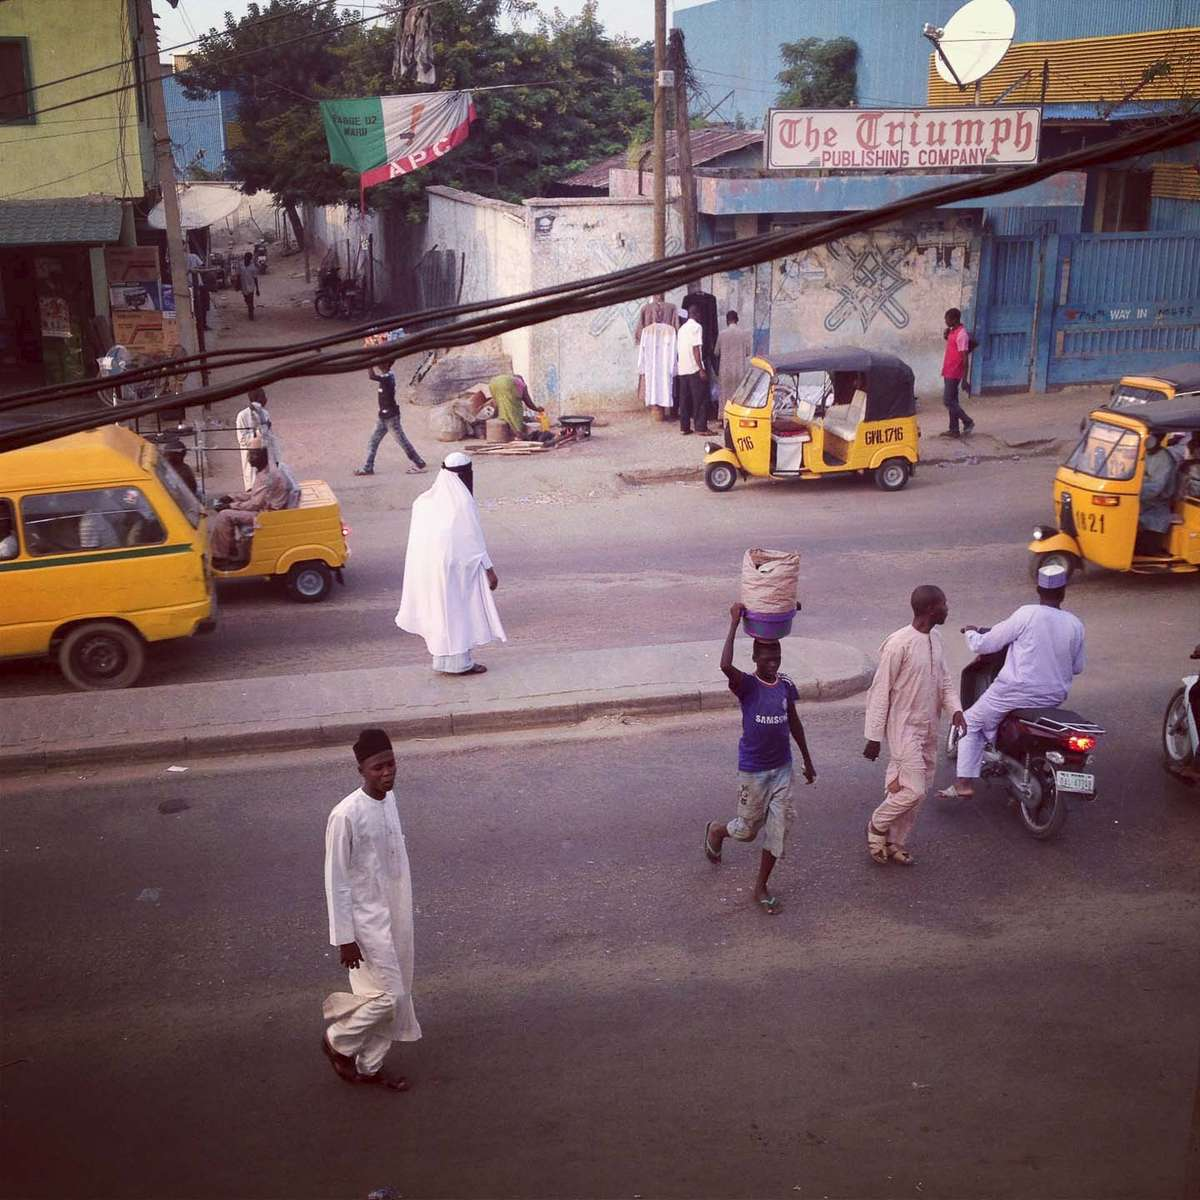 The streets of Kano, Northern Nigeria. October 2013.